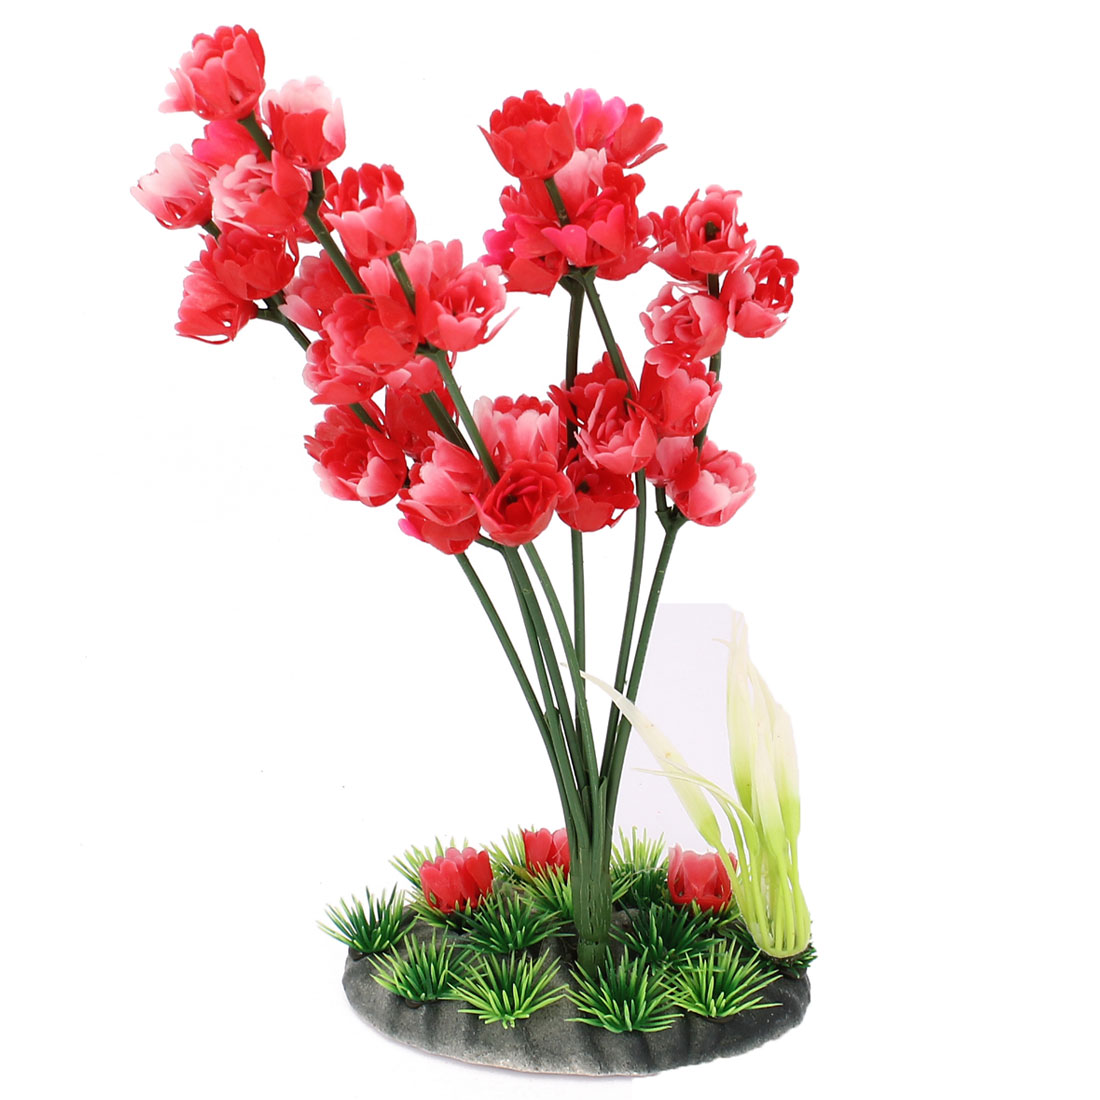 Fish Tank Lifelike Red Plastic Plum Blossom Water Plant Decoration 8 4/5""